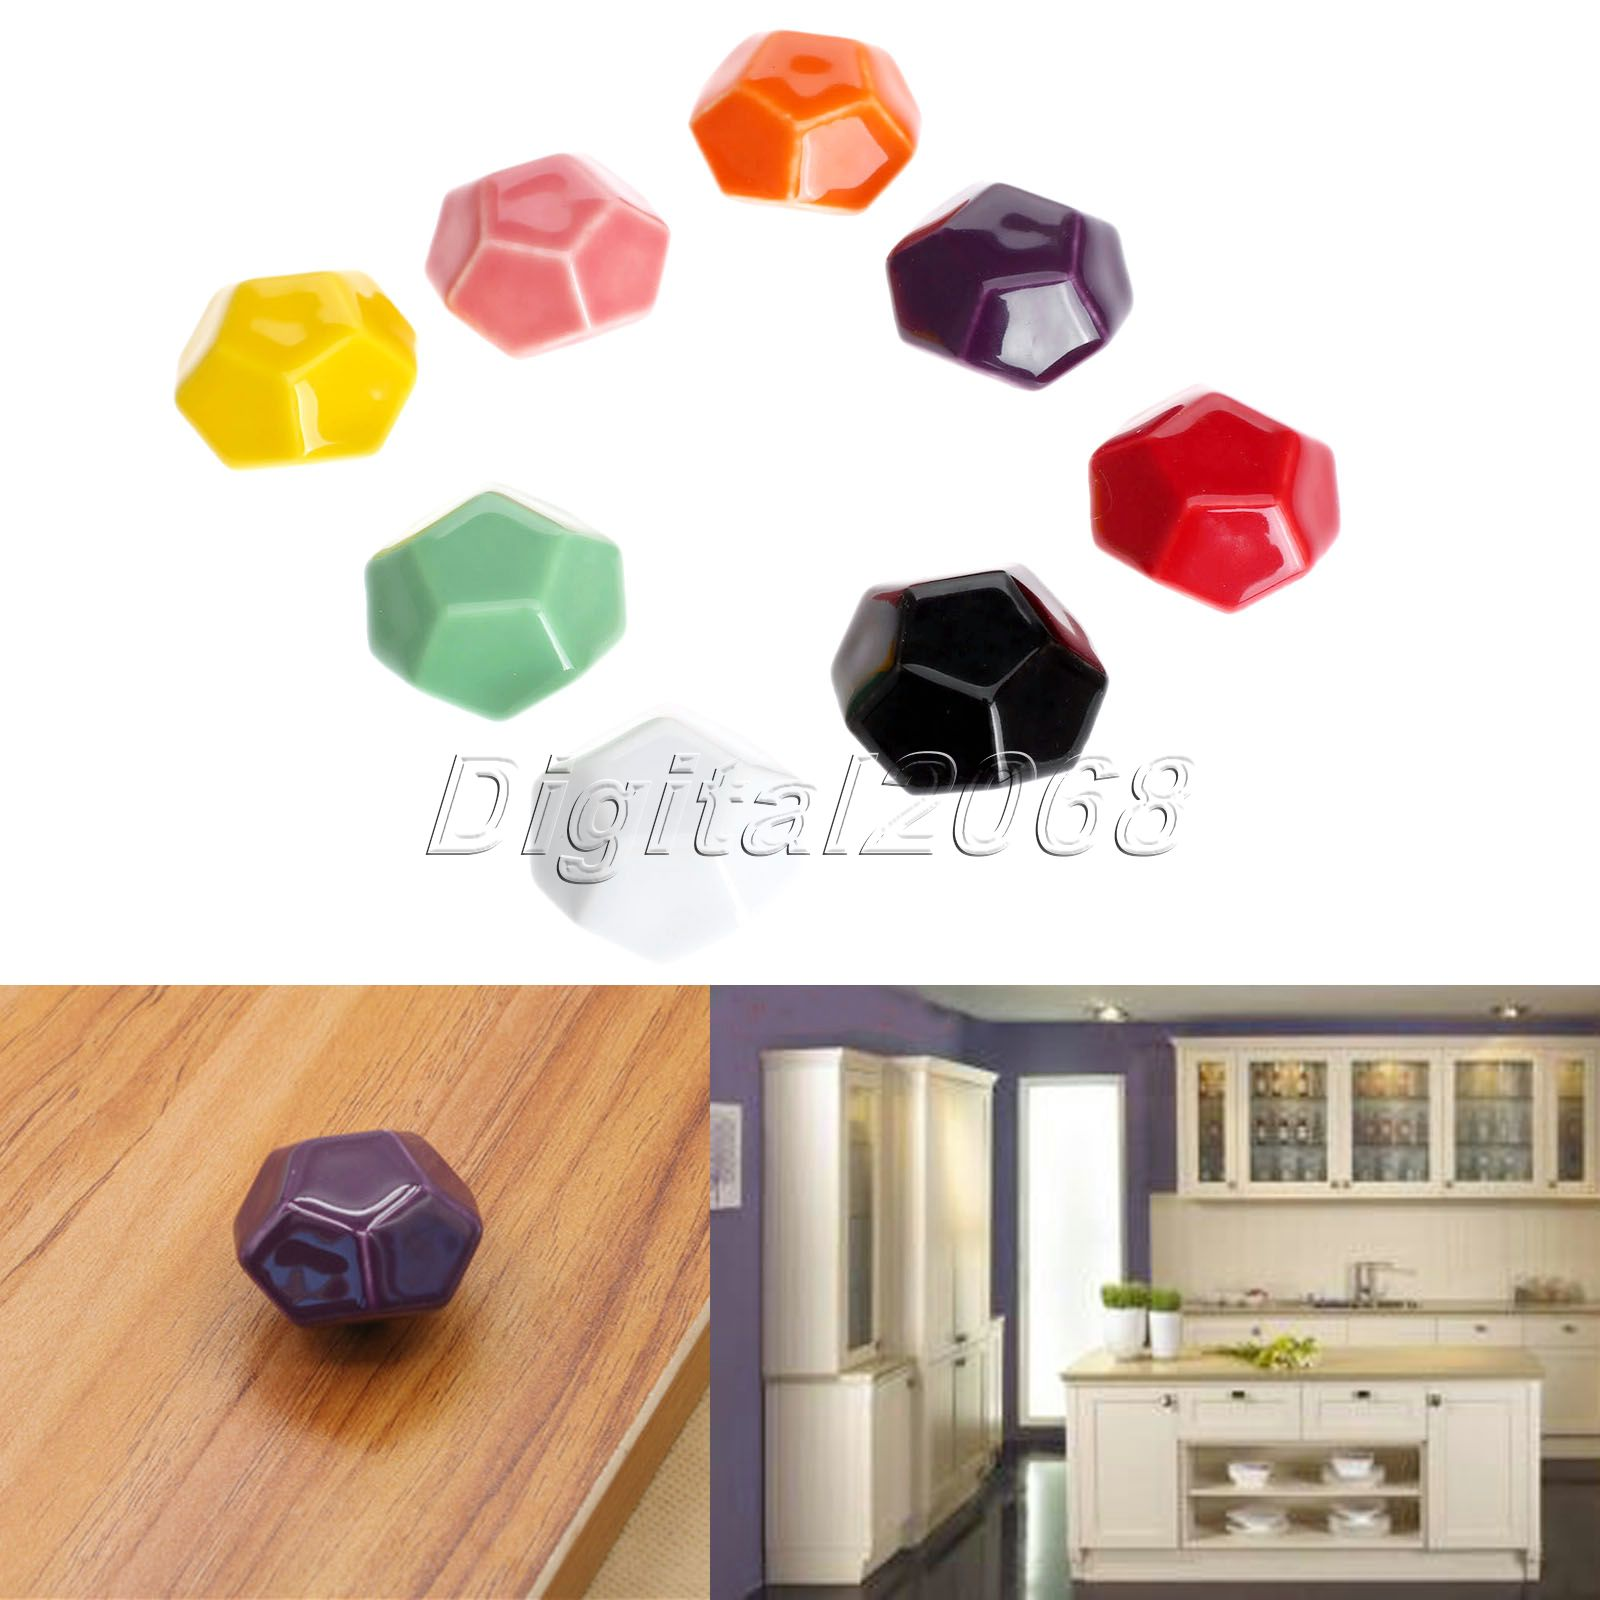 Diamond 8 Colors Vintage Retro Ceramics Drawer Knob Cabinet Cupboard Door Pull Handle Furniture Decor Kitchen Knobs and Handles<br><br>Aliexpress